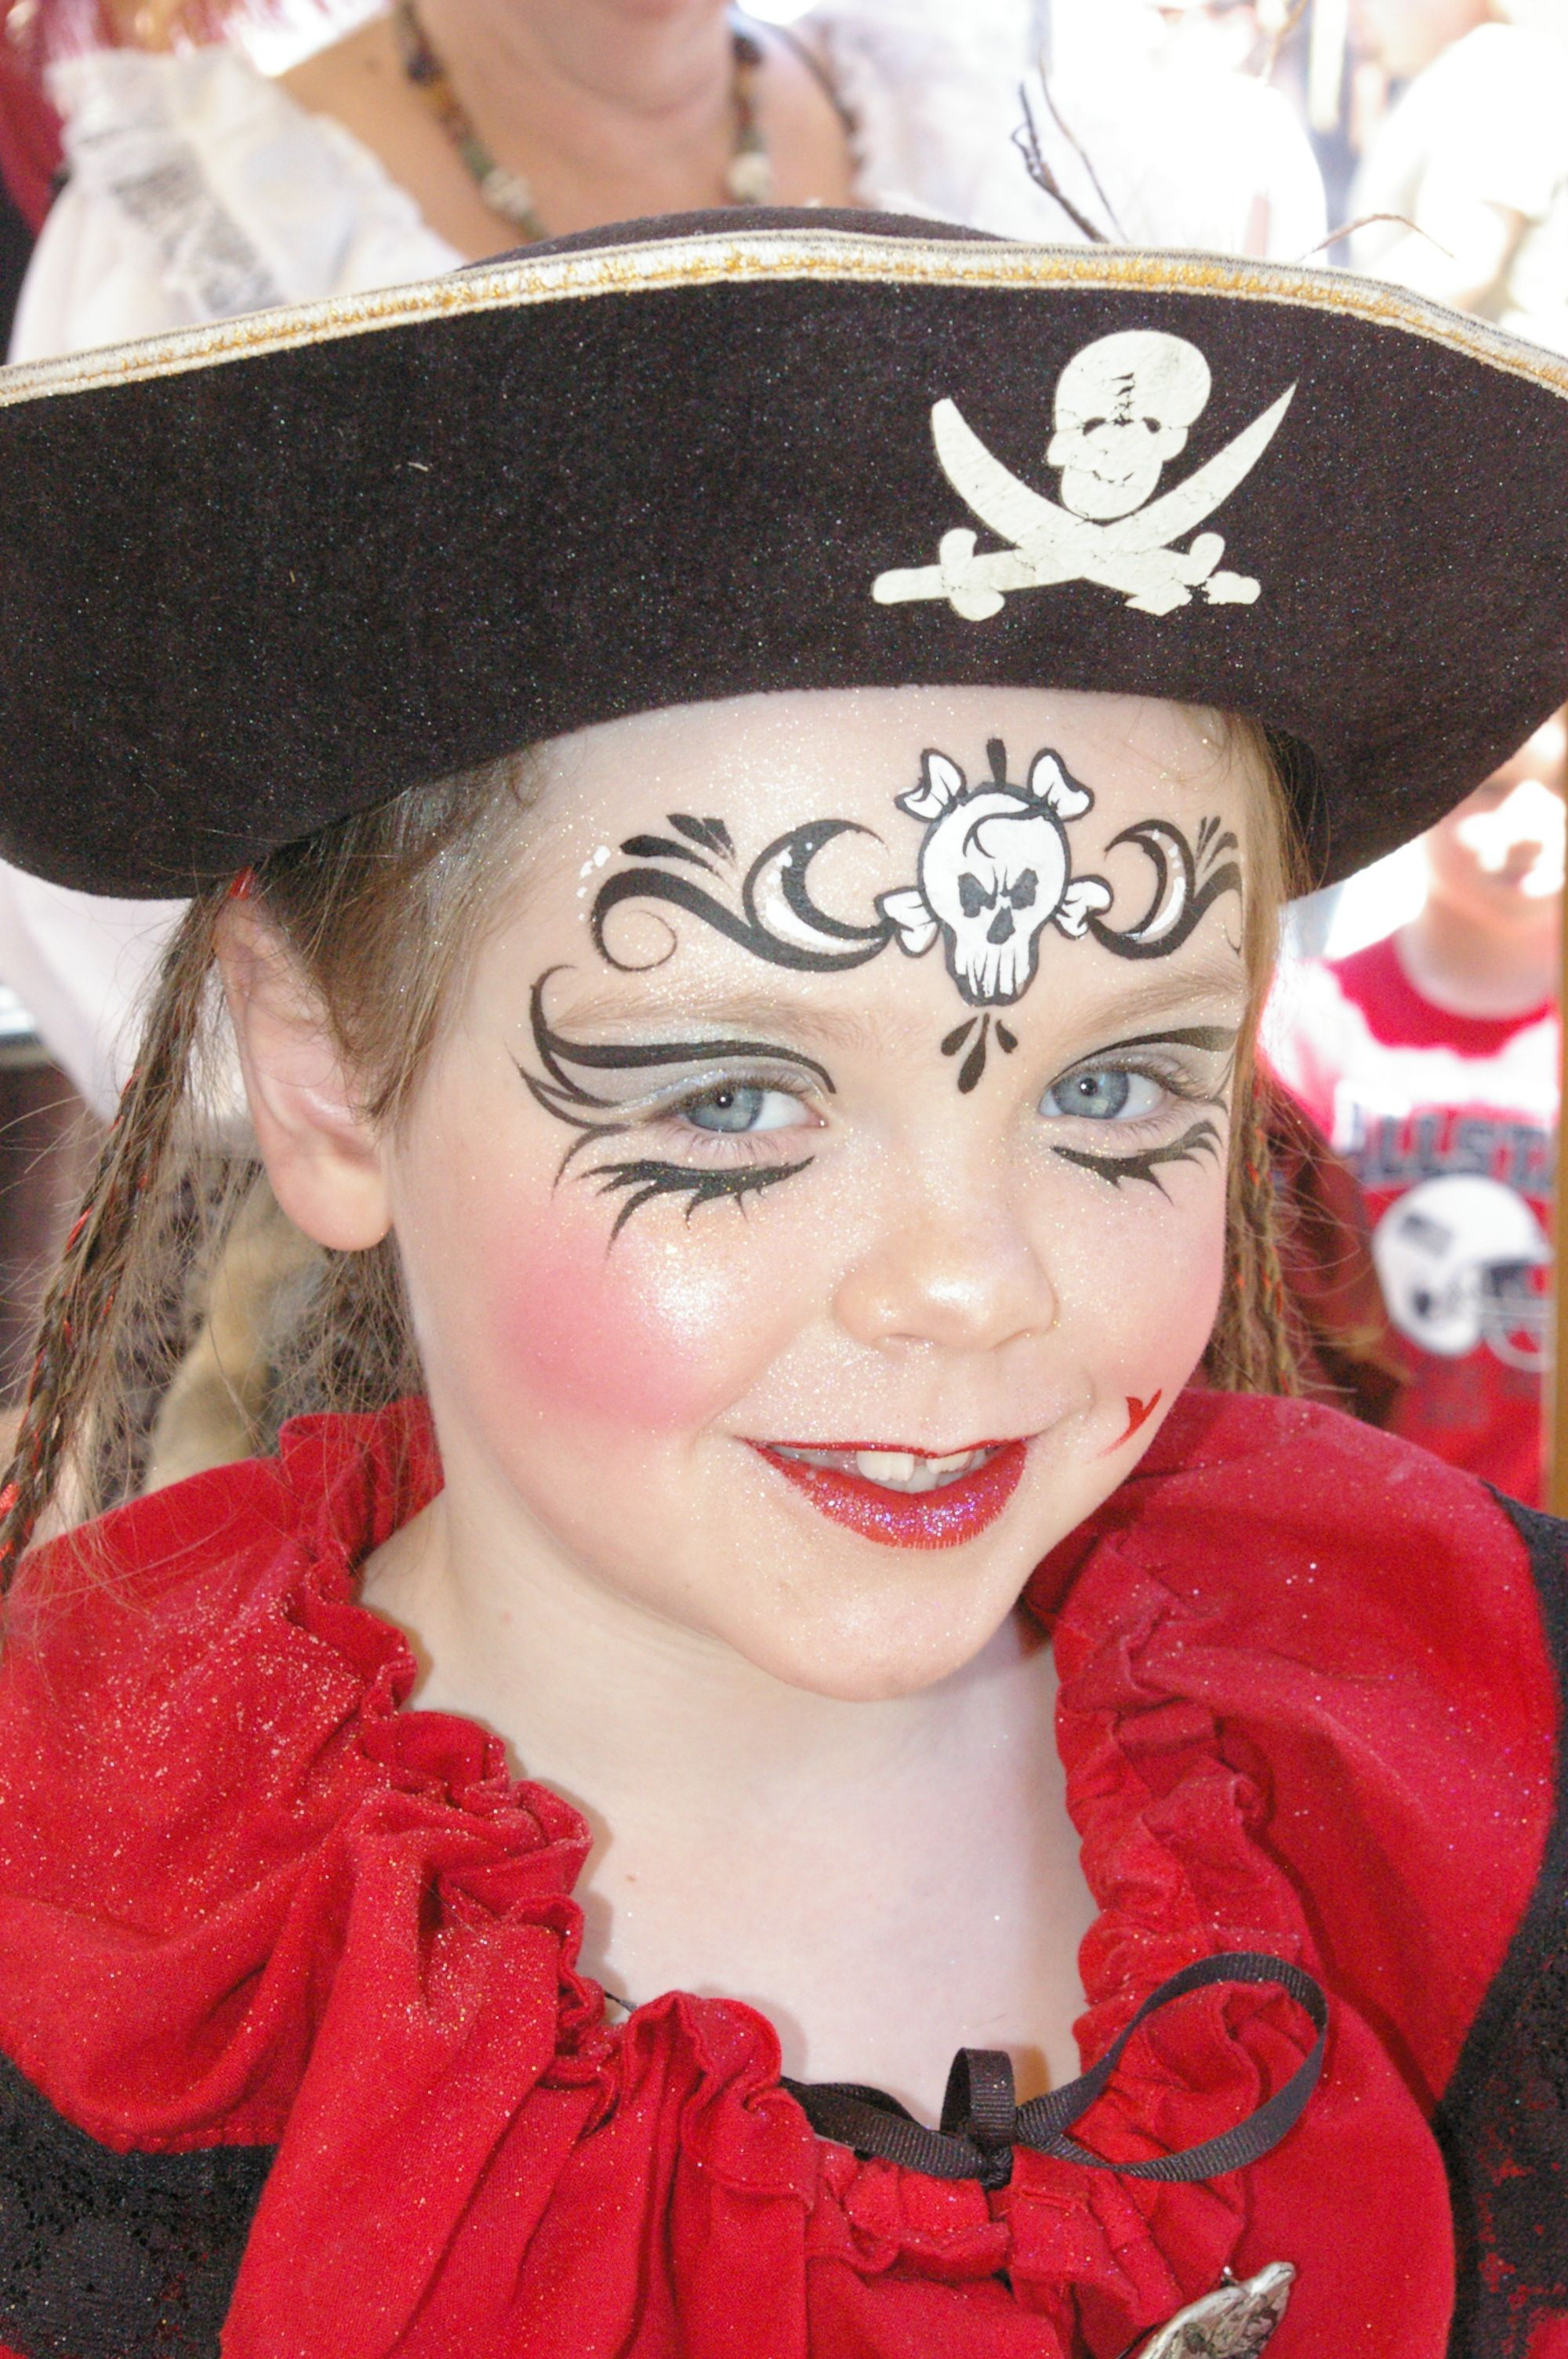 Uncategorized Pirate Faces girl pirate i love how the eyes are done might be a neat face painting for girls